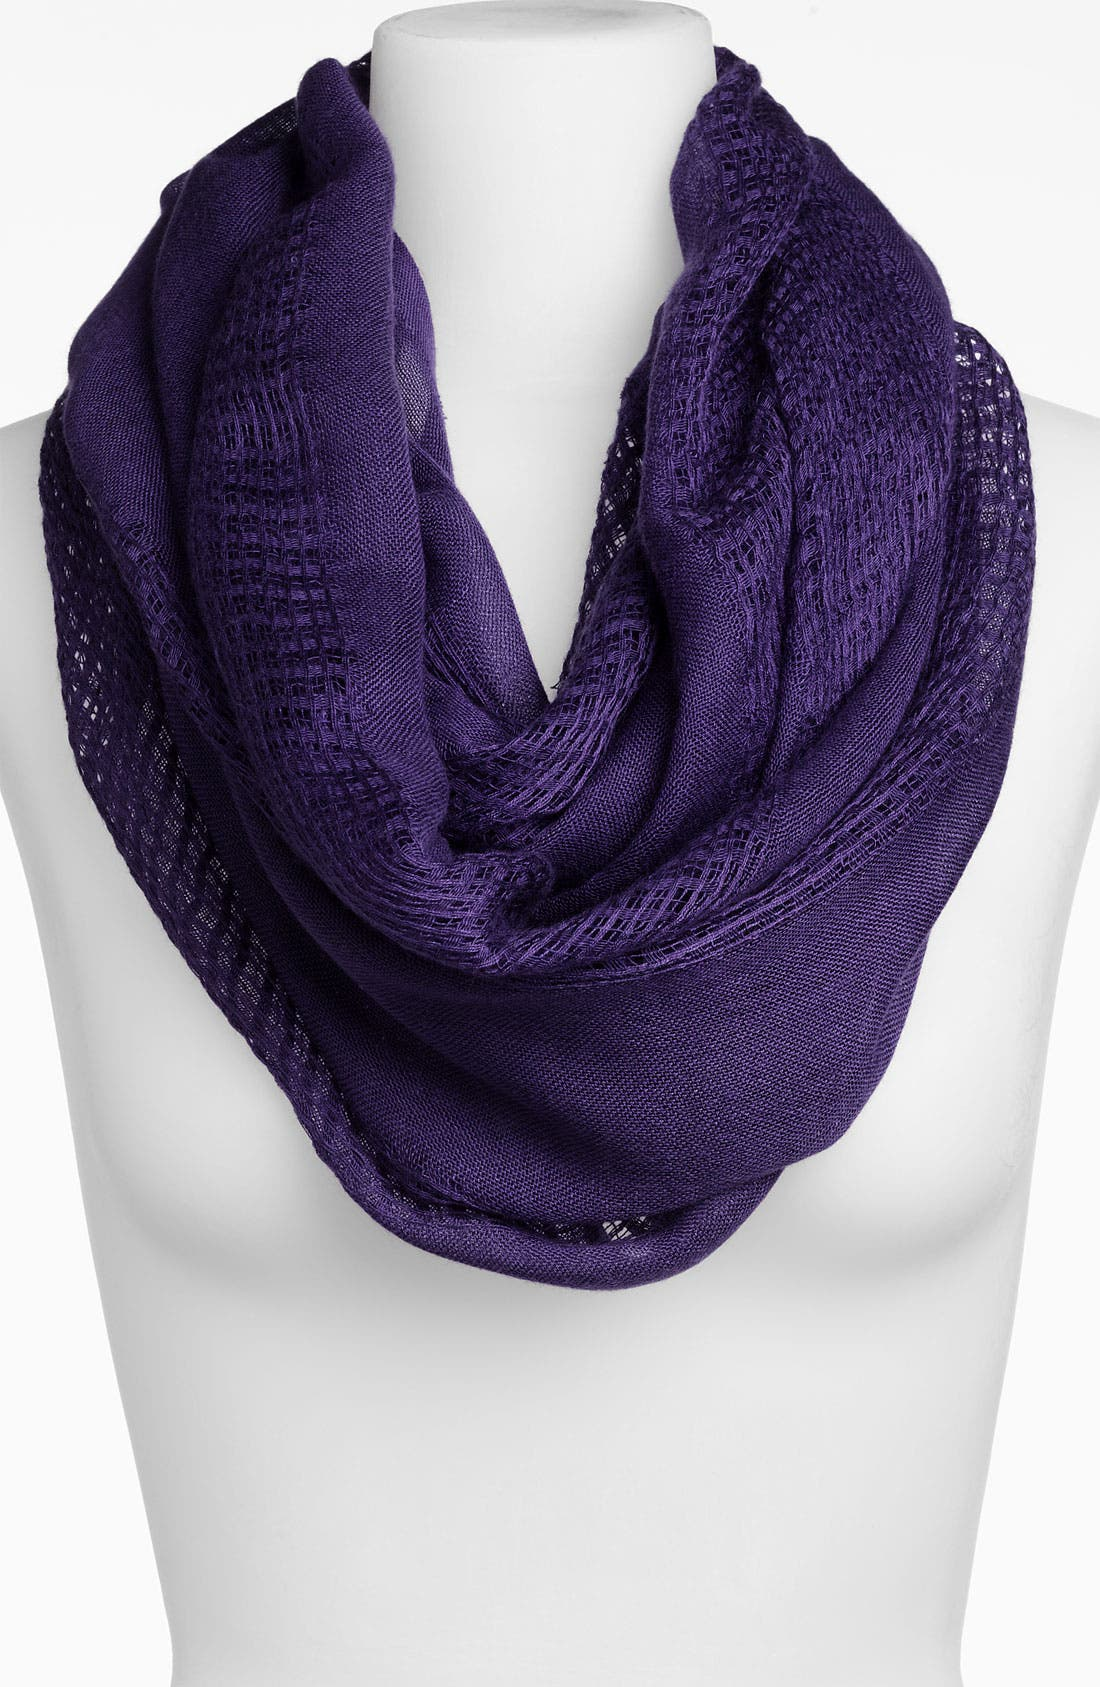 Alternate Image 1 Selected - BP. Woven Infinity Scarf